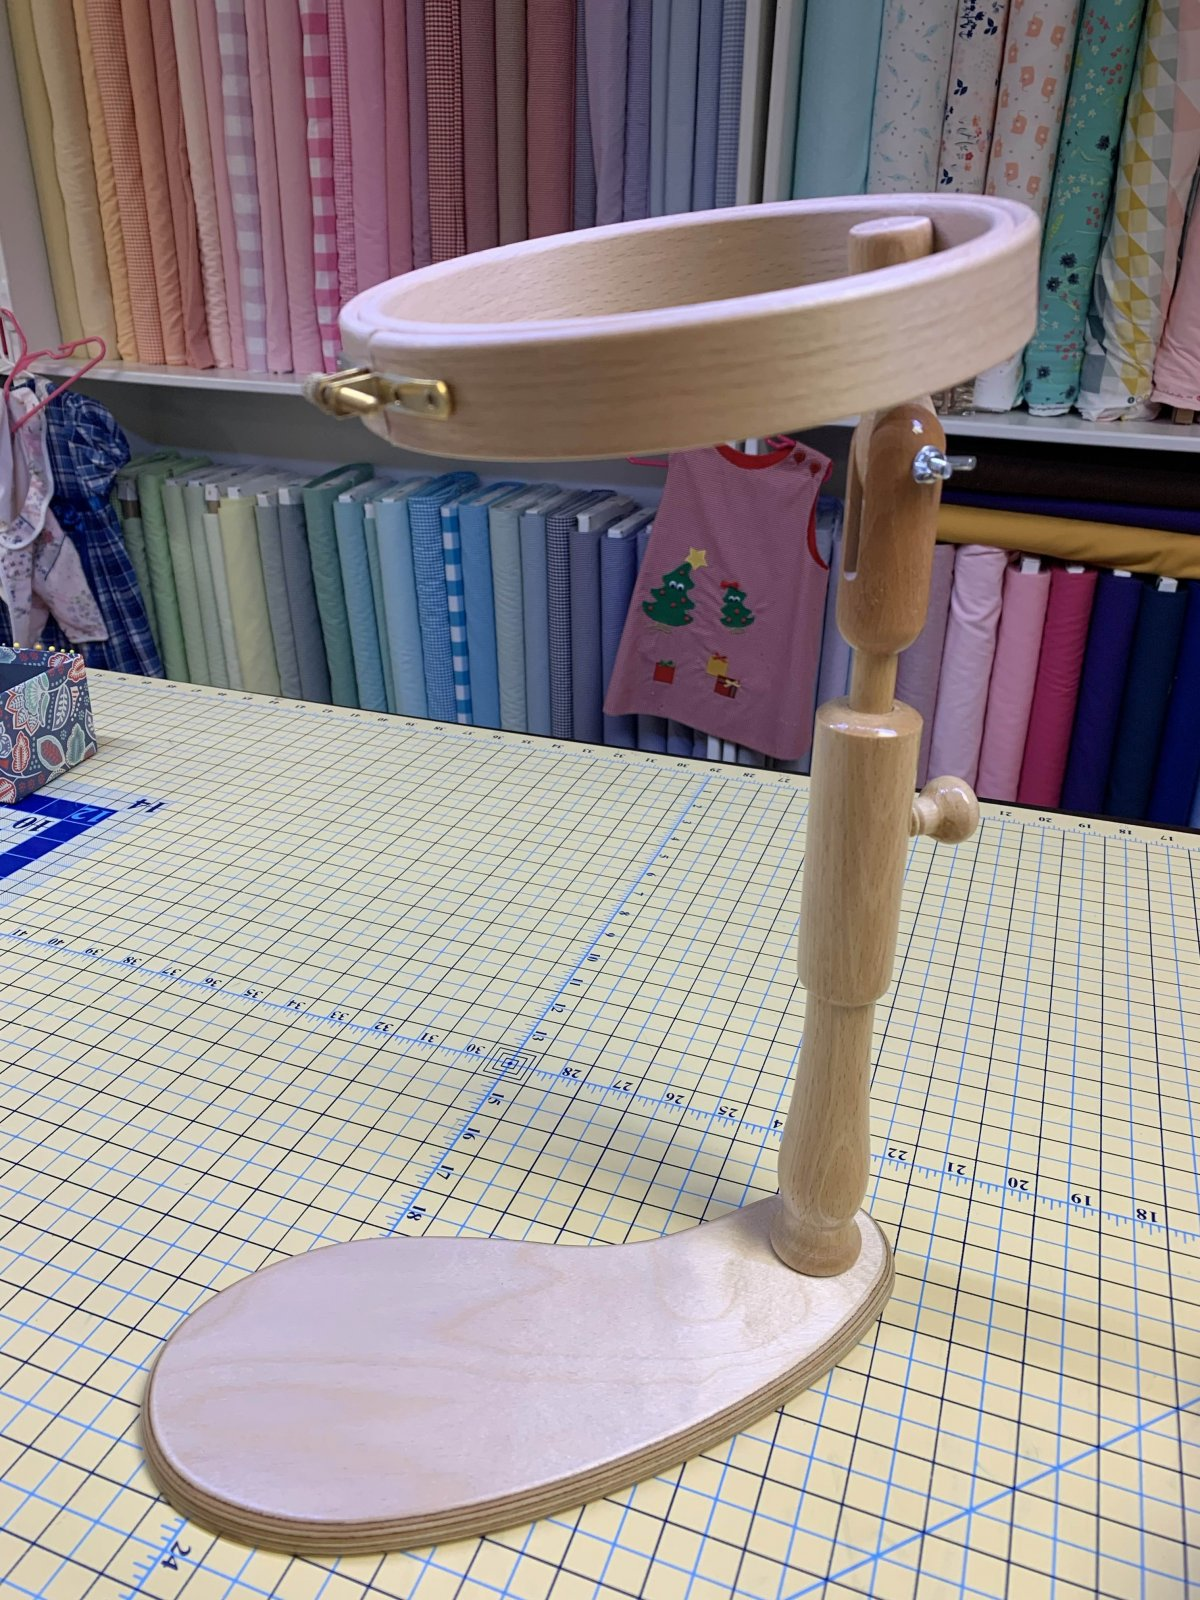 6 Wooden Sit On Embroidery Hoop